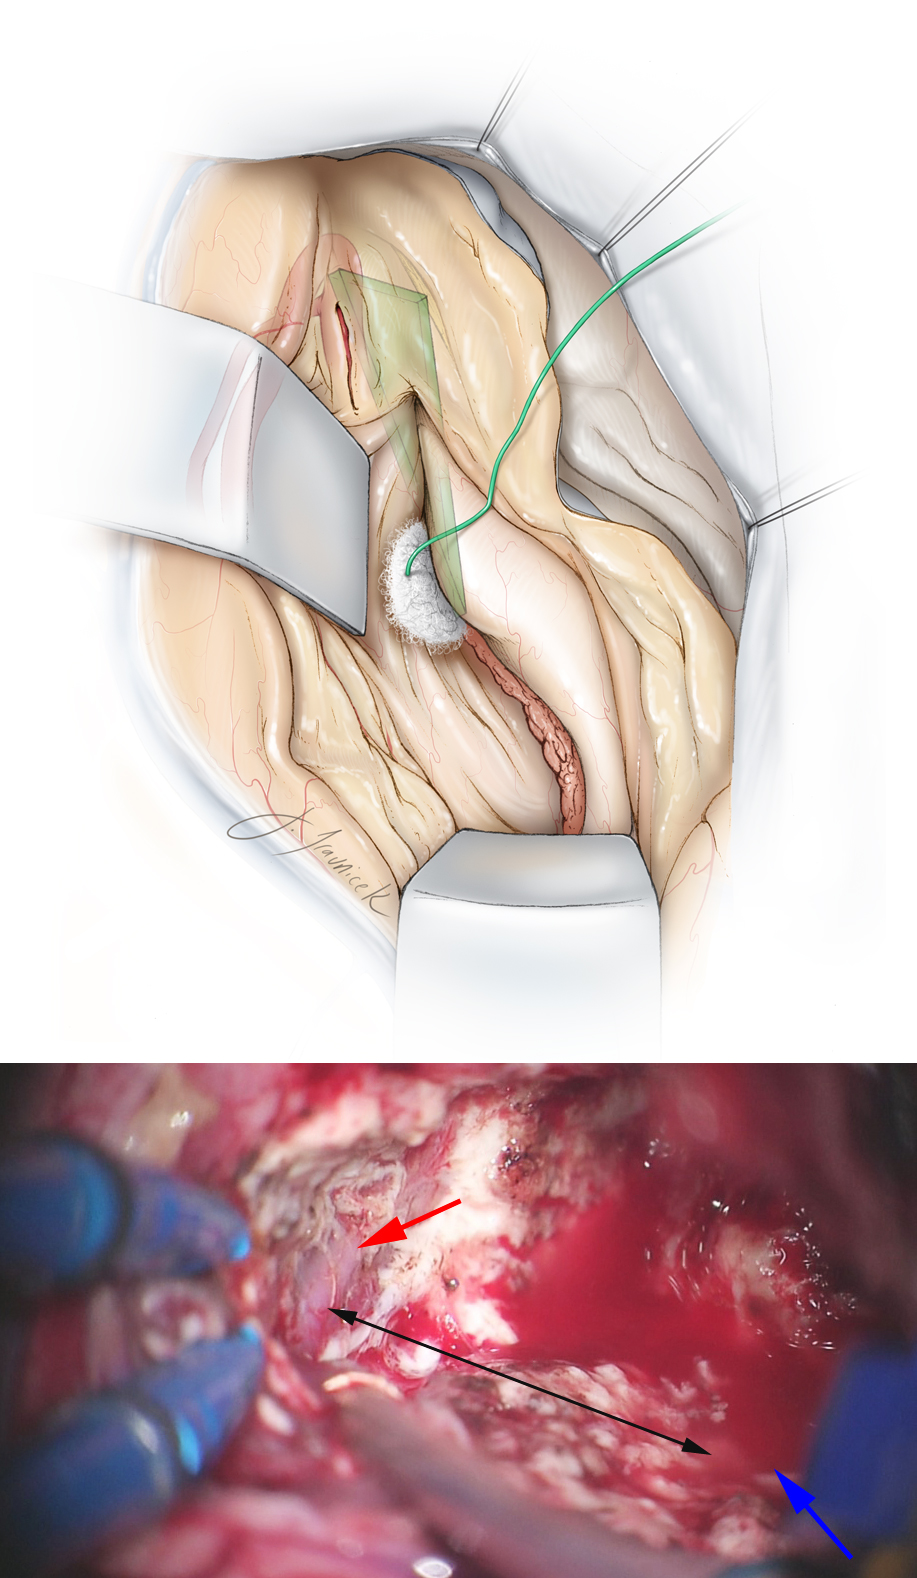 Figure 16: A small portion of the medial middle temporal gyrus overlying the middle cerebral artery (MCA) is subpially removed to expose the MCA bifurcation or the distal M1 segment that remains covered by its encasing Sylvian fissure arachnoid layers. A line from the MCA to the inferior choroidal point (where the anterior choroidal artery enters the temporal horn) defines the border (green plane) between the amygdala and the pallidum. It is important to maintain this dorsal dissection plane during the amygdalectomy to avoid injuring the globus pallidus (top illustration). The bottom intraoperative photo shows the M1 through it arachnoid band (red arrow) and the inferior choroidal point (blue arrow). The connecting black line marks the upper border of amygdalar removal.